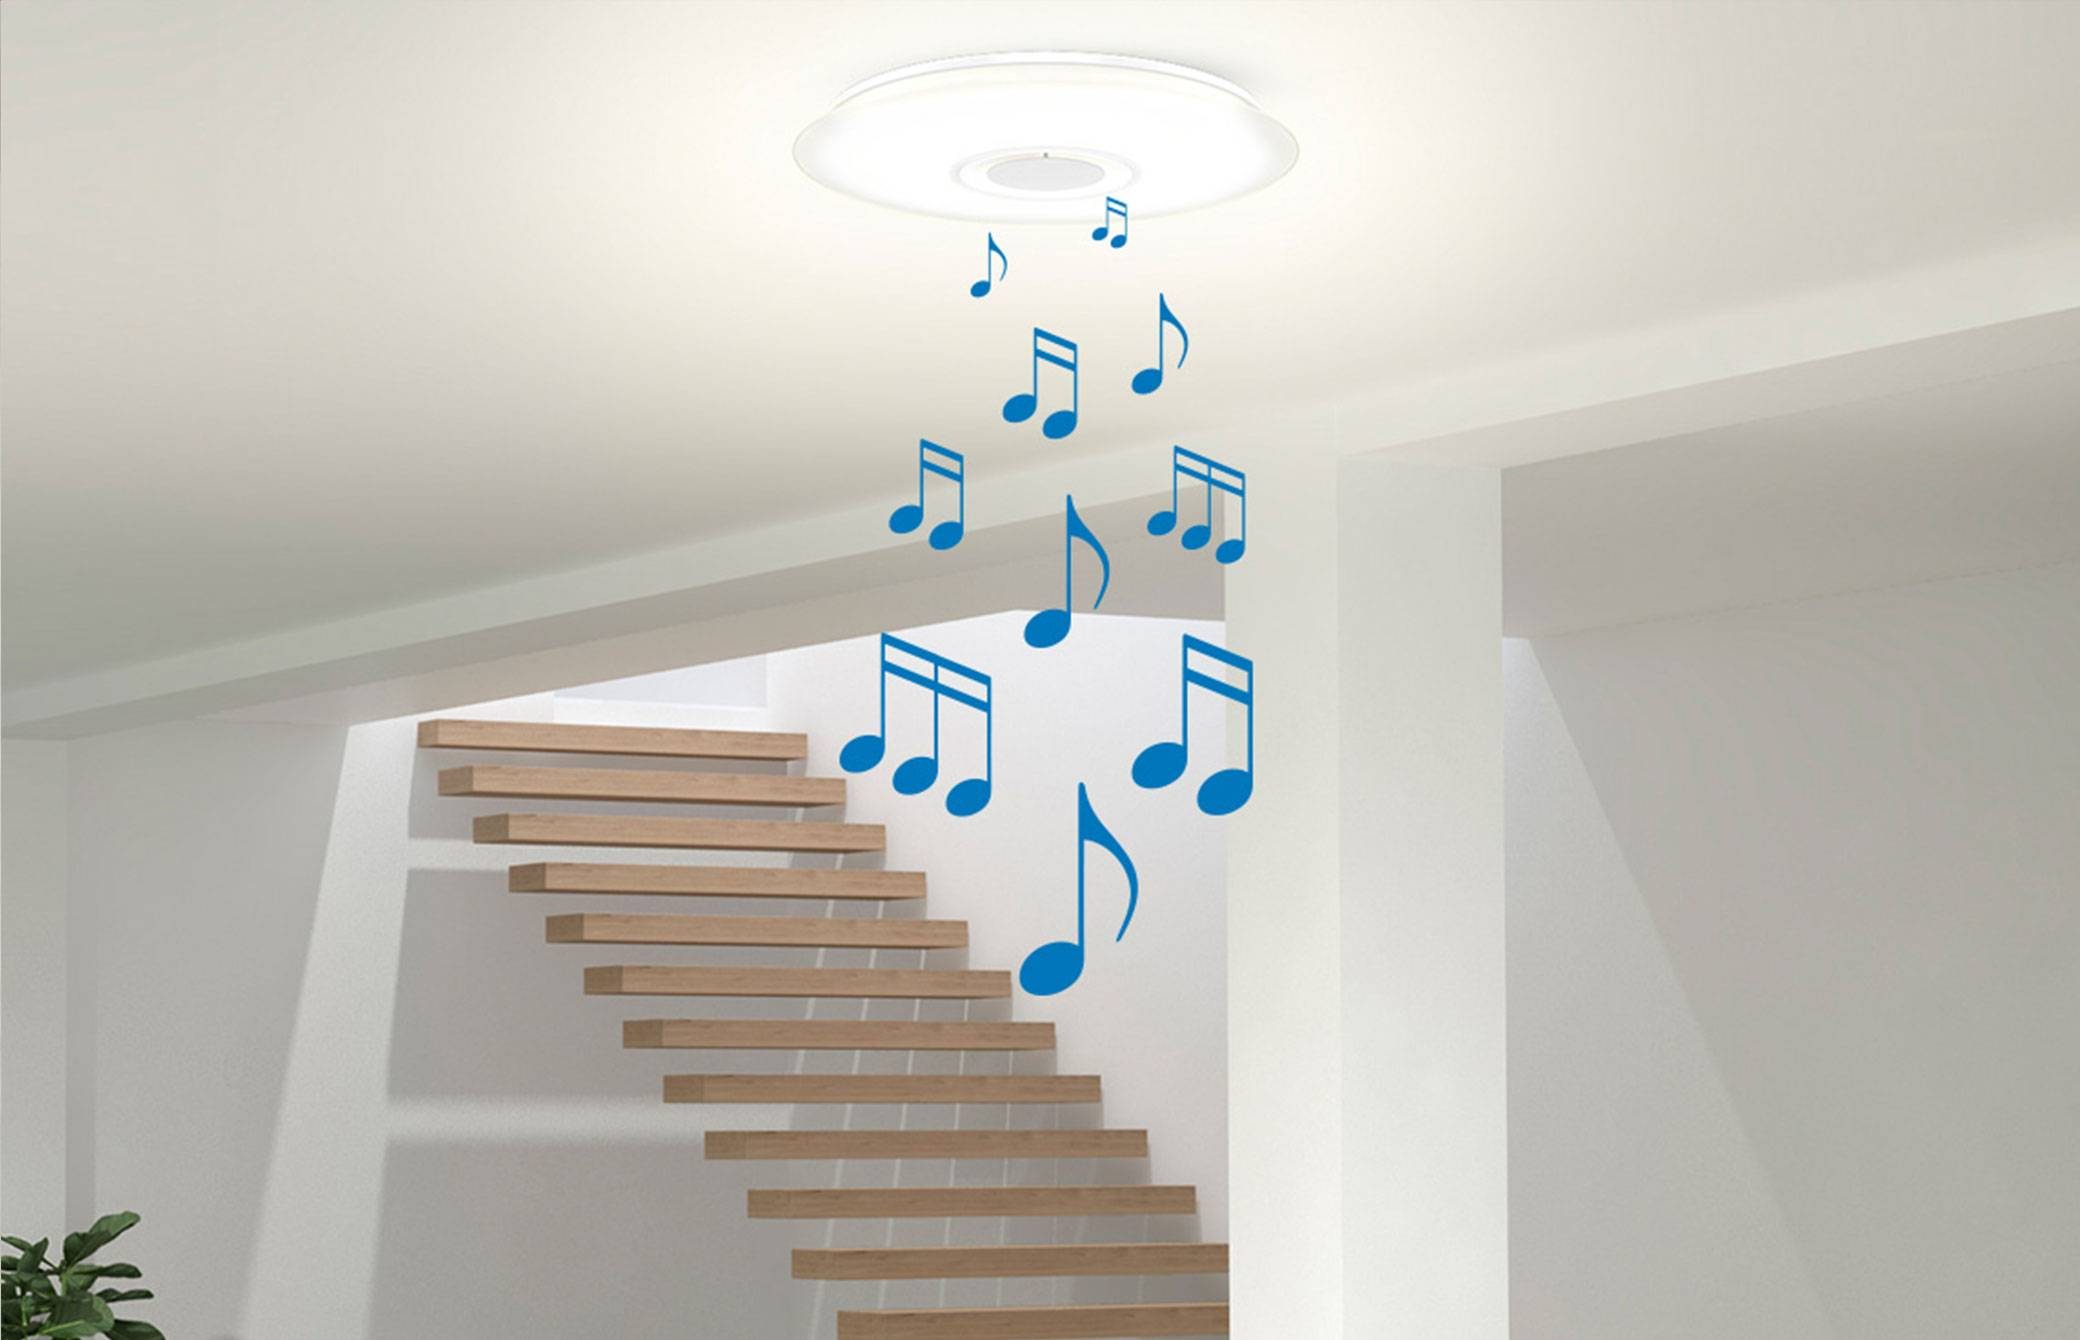 Music coming from your smart light fixture